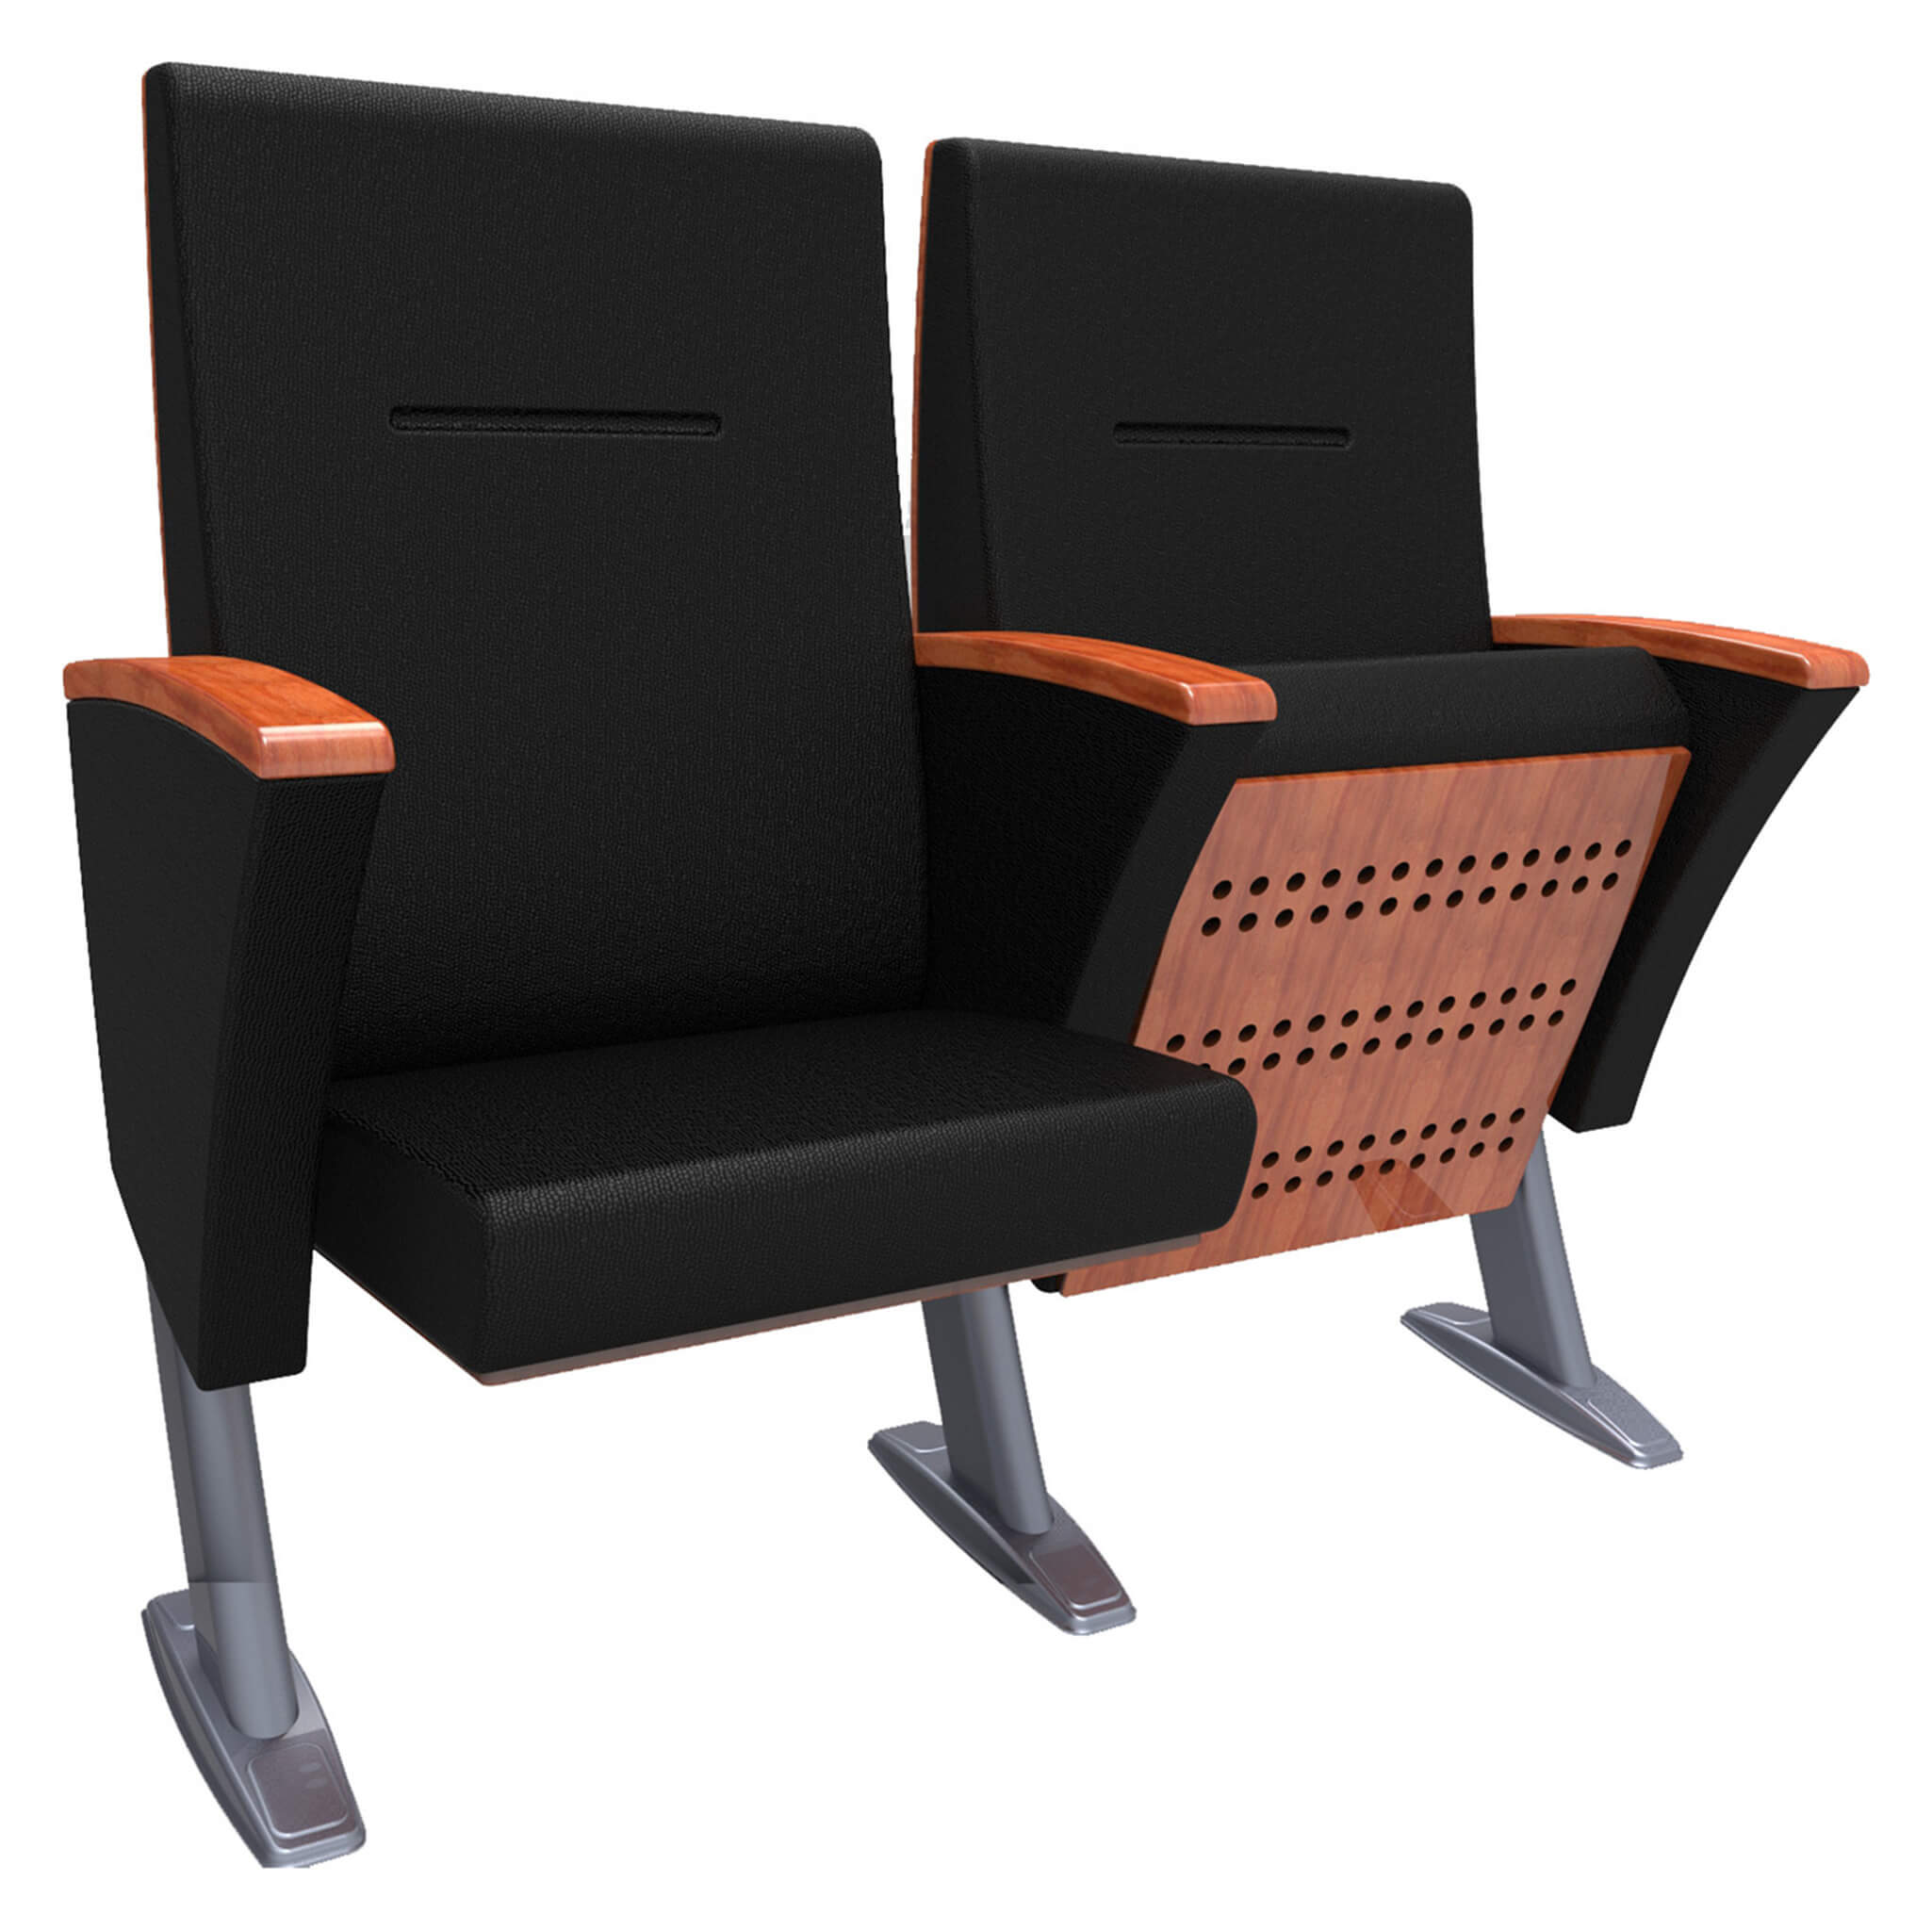 AKON A30 - Auditorium, Theatre Chair - Turkey - Seatorium - Public Seating Manufacturer